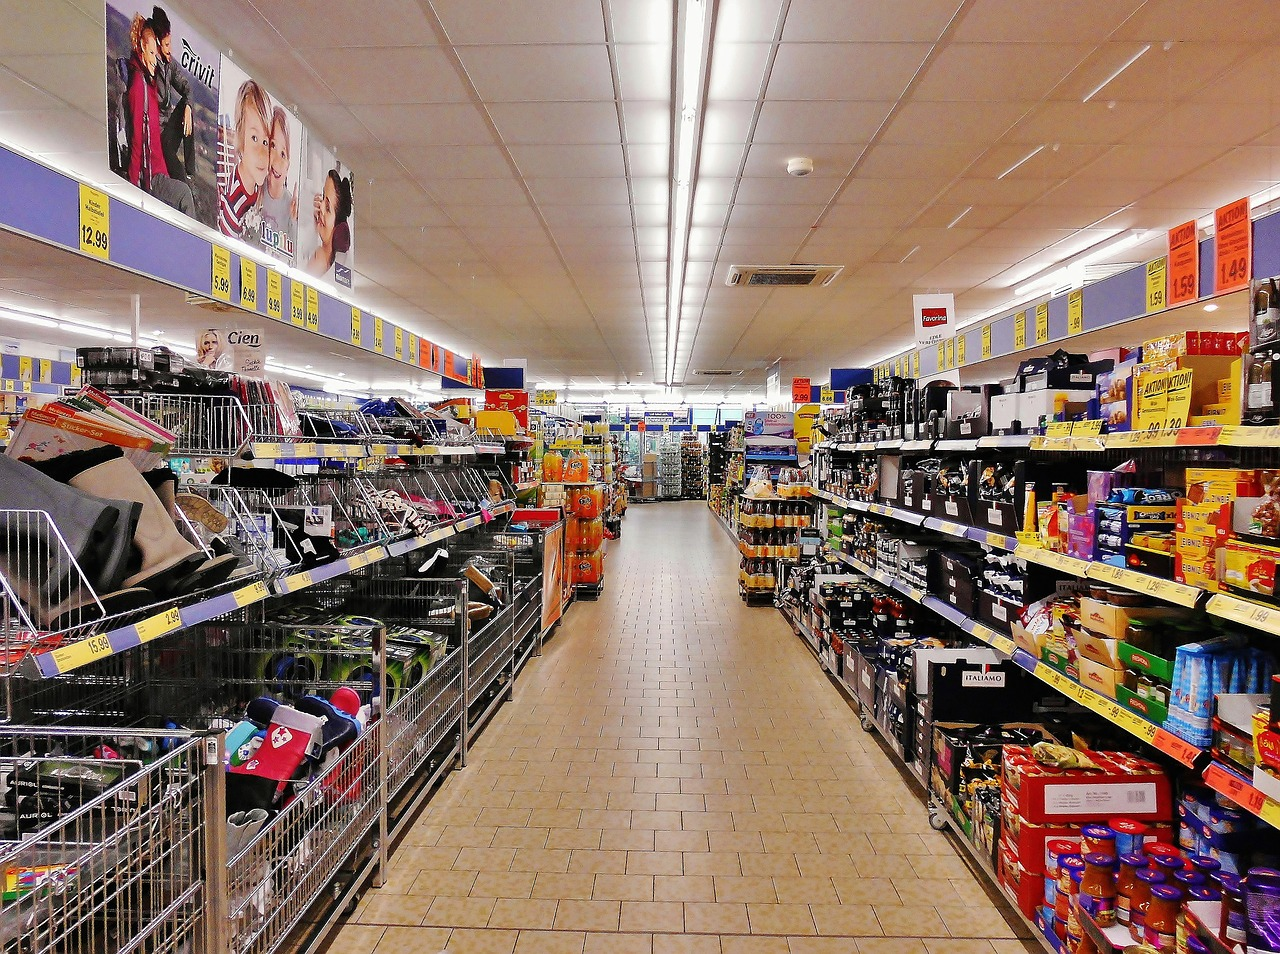 German supermarkets grocery stores